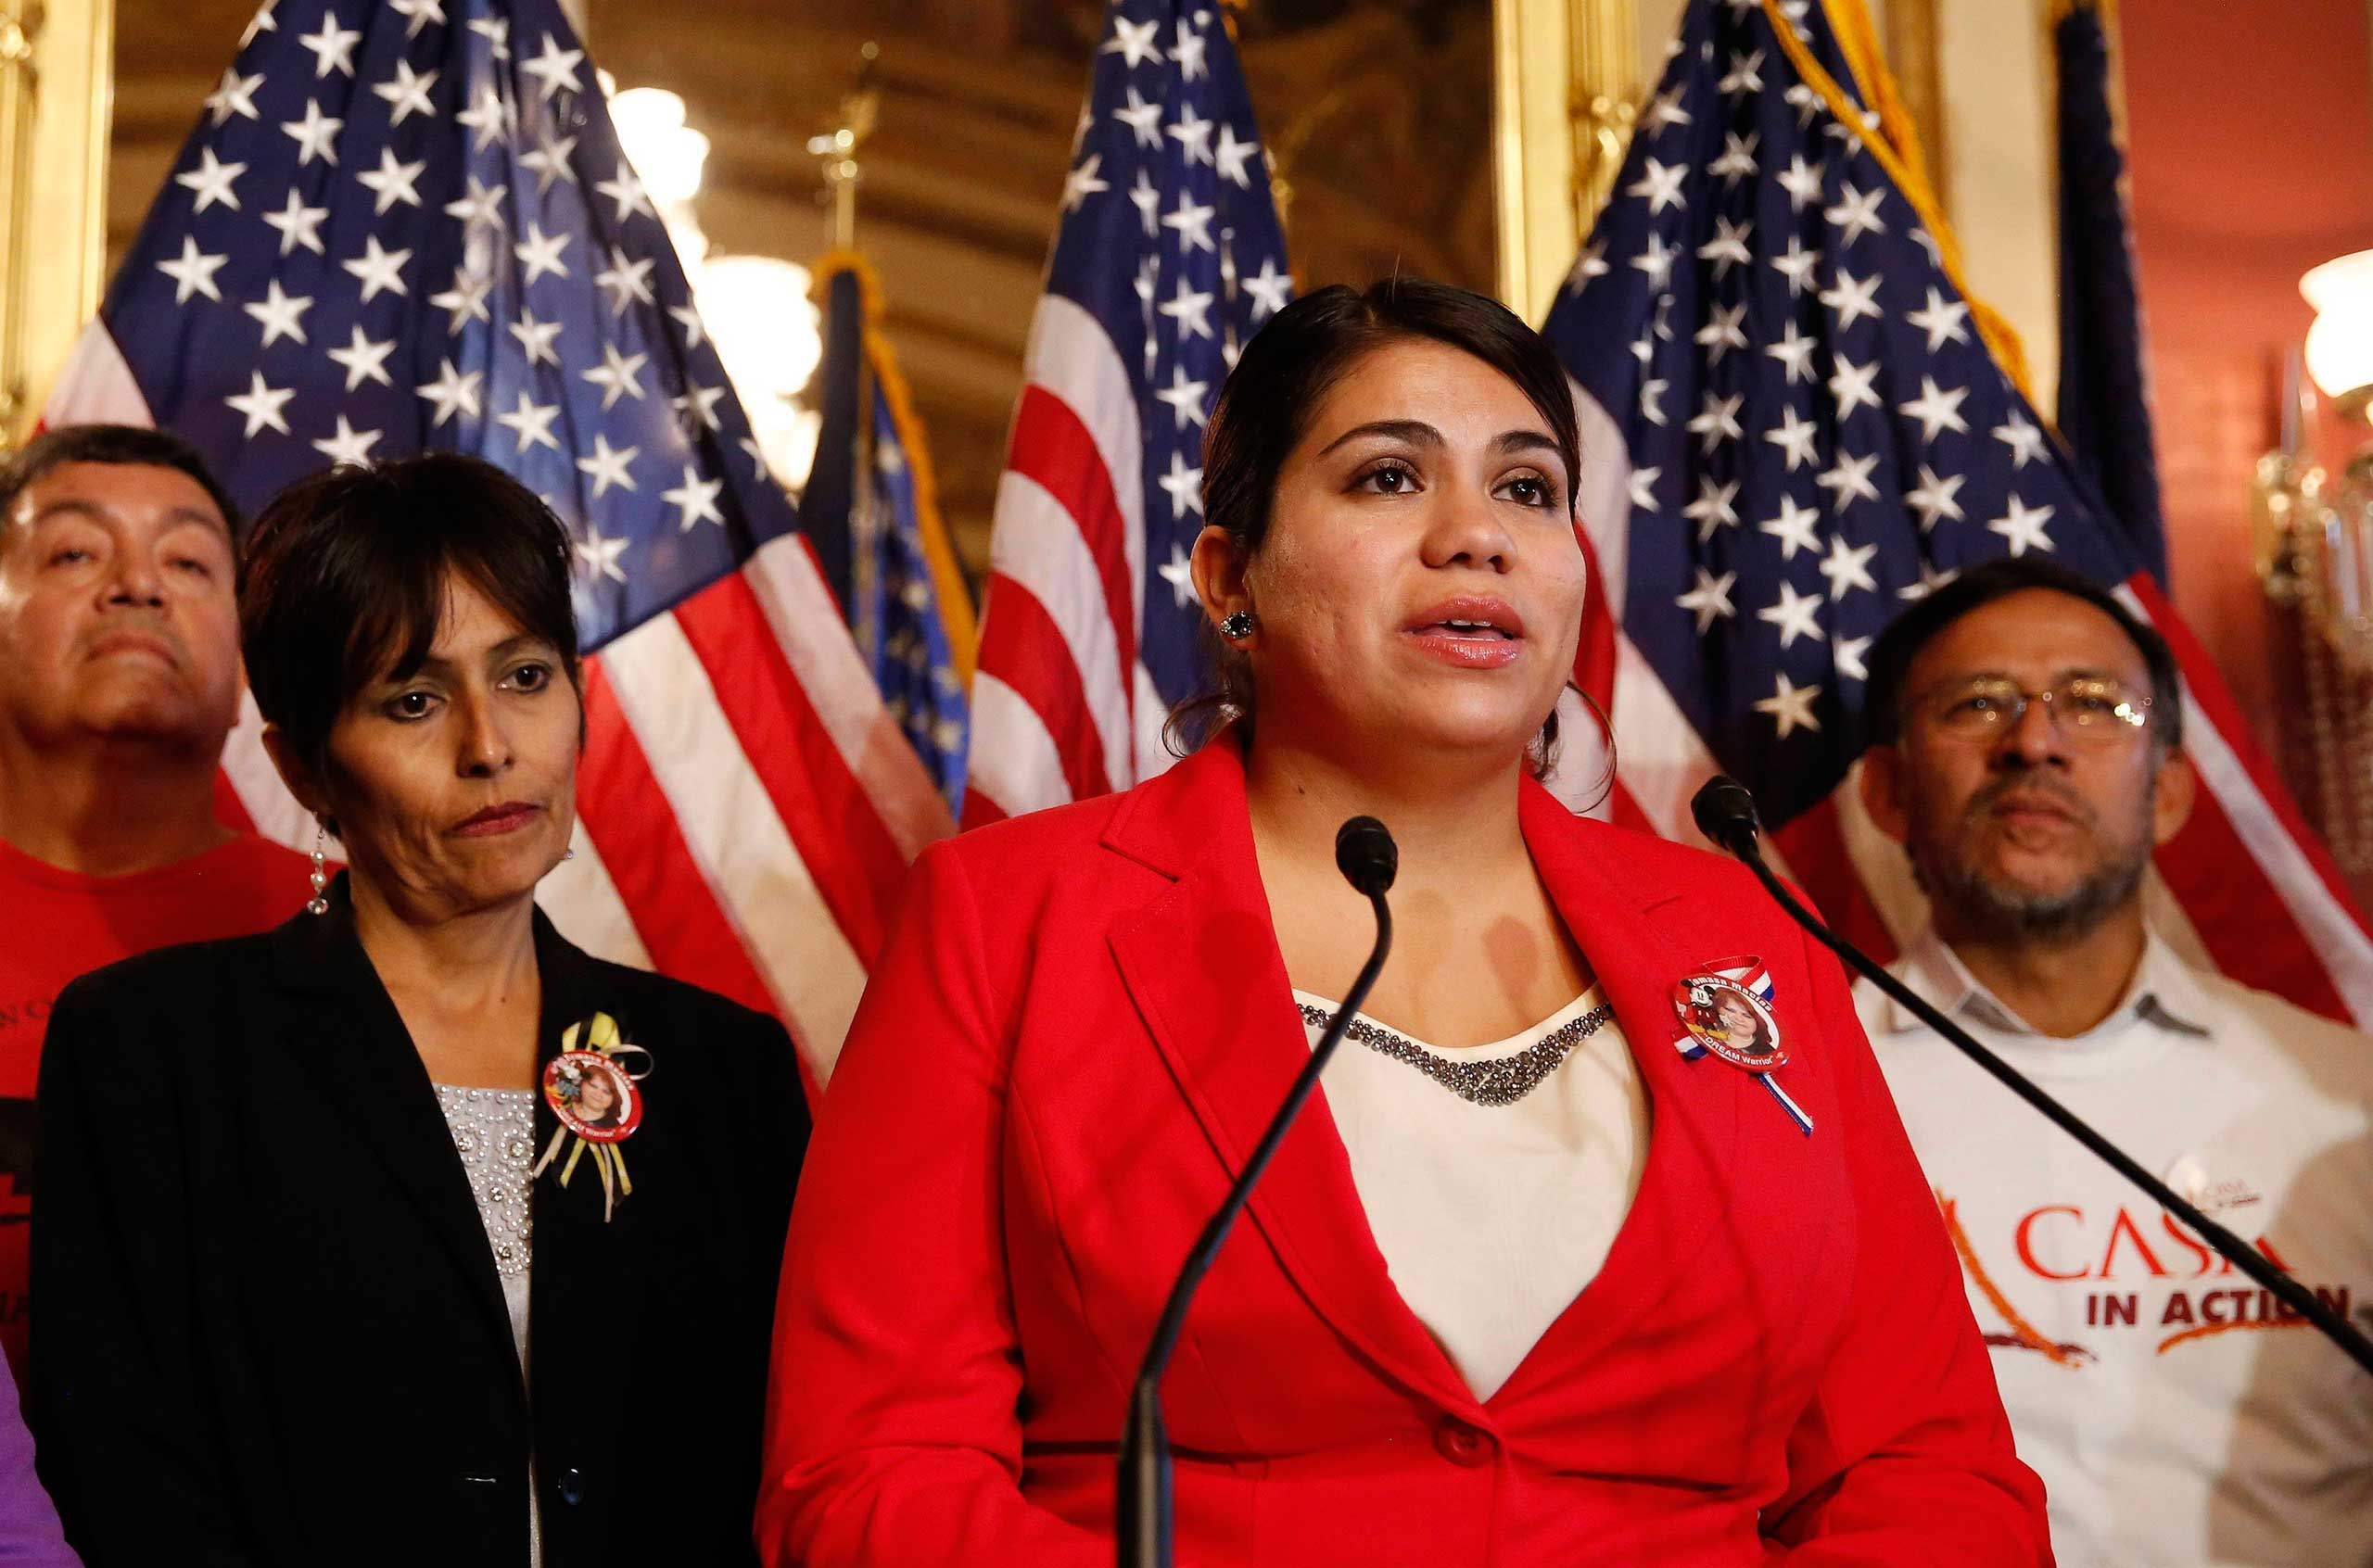 Immigration activist Astrid Silva (in red) stands next to her mother, Barbara Silva, as she speaks about immigration reform at a news conference on Capitol Hill in Washington, Dec. 10, 2014.